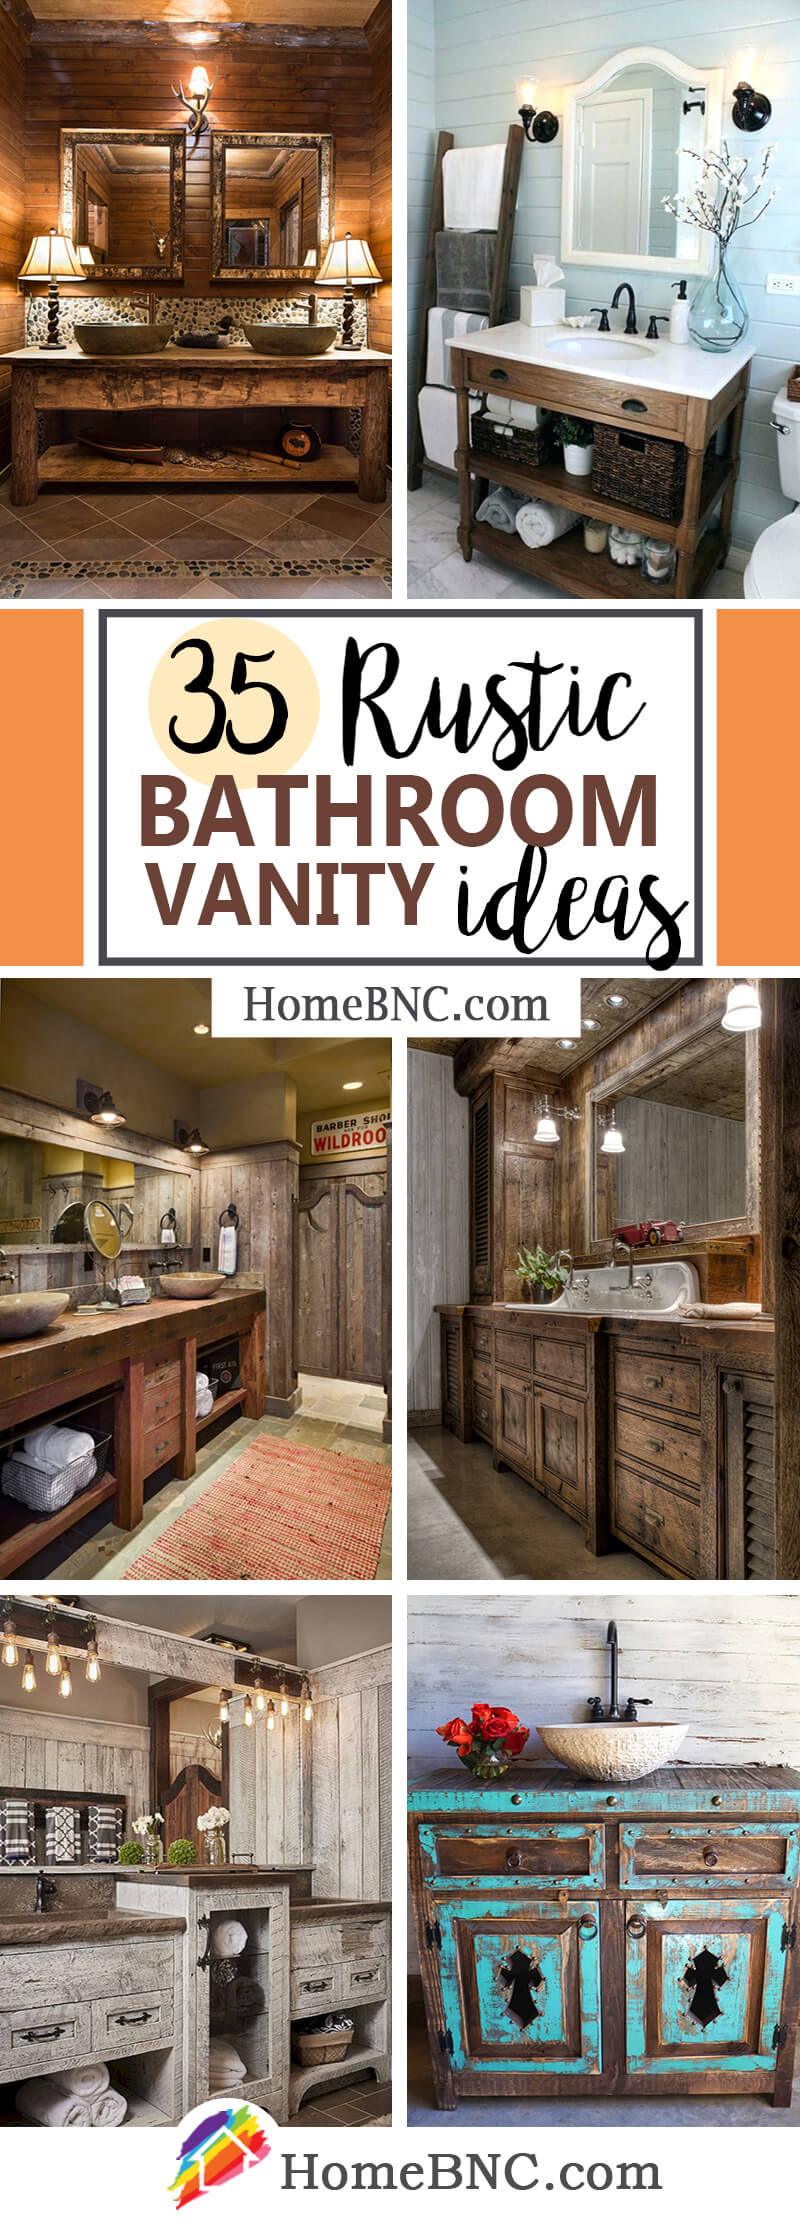 Rustic Bathroom Vanity Ideas